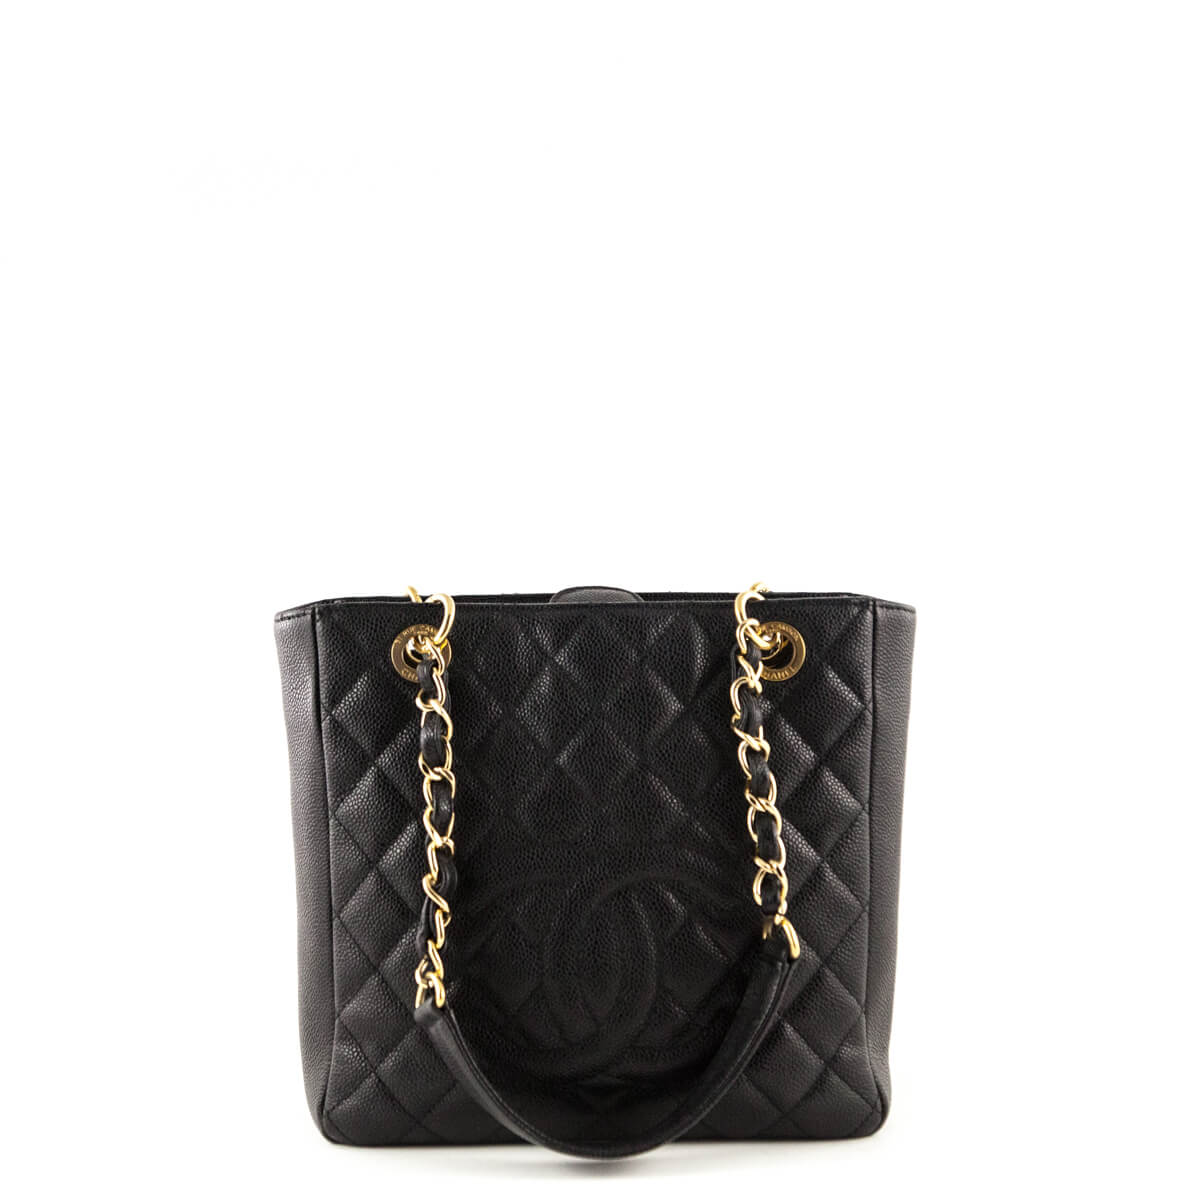 1a3ab5783266 Chanel Black Caviar Petit Shopping Tote GHW - LOVE that BAG - Preowned  Authentic Designer Handbags ...